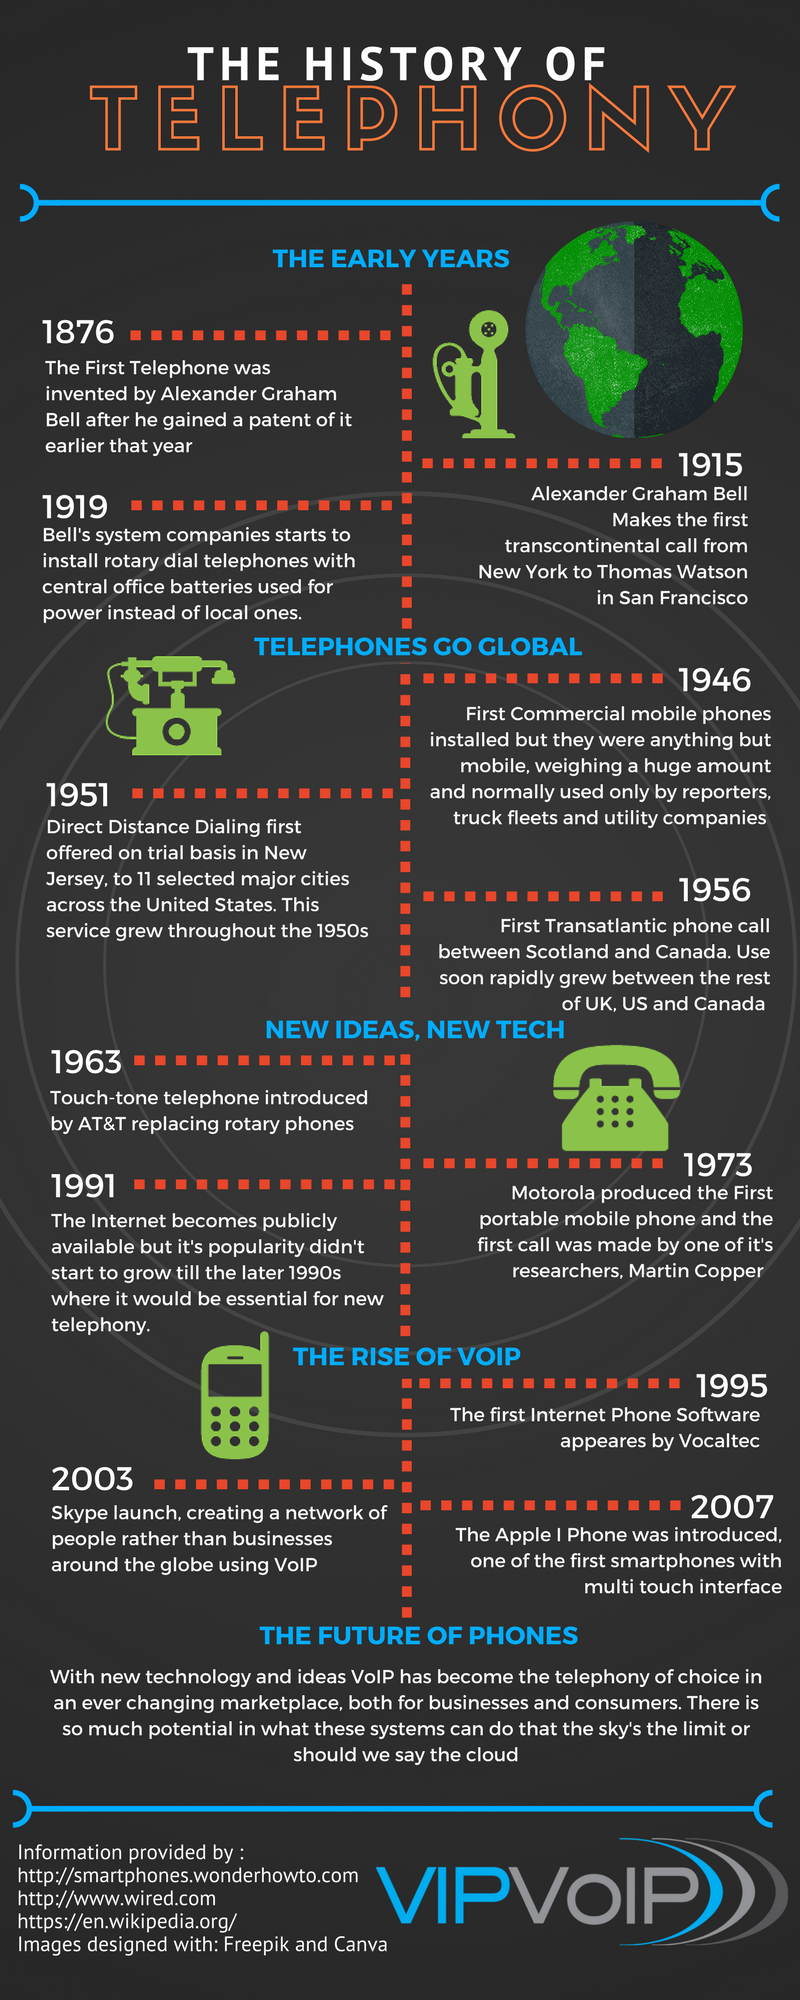 The History of Telephony - VIP VoIP